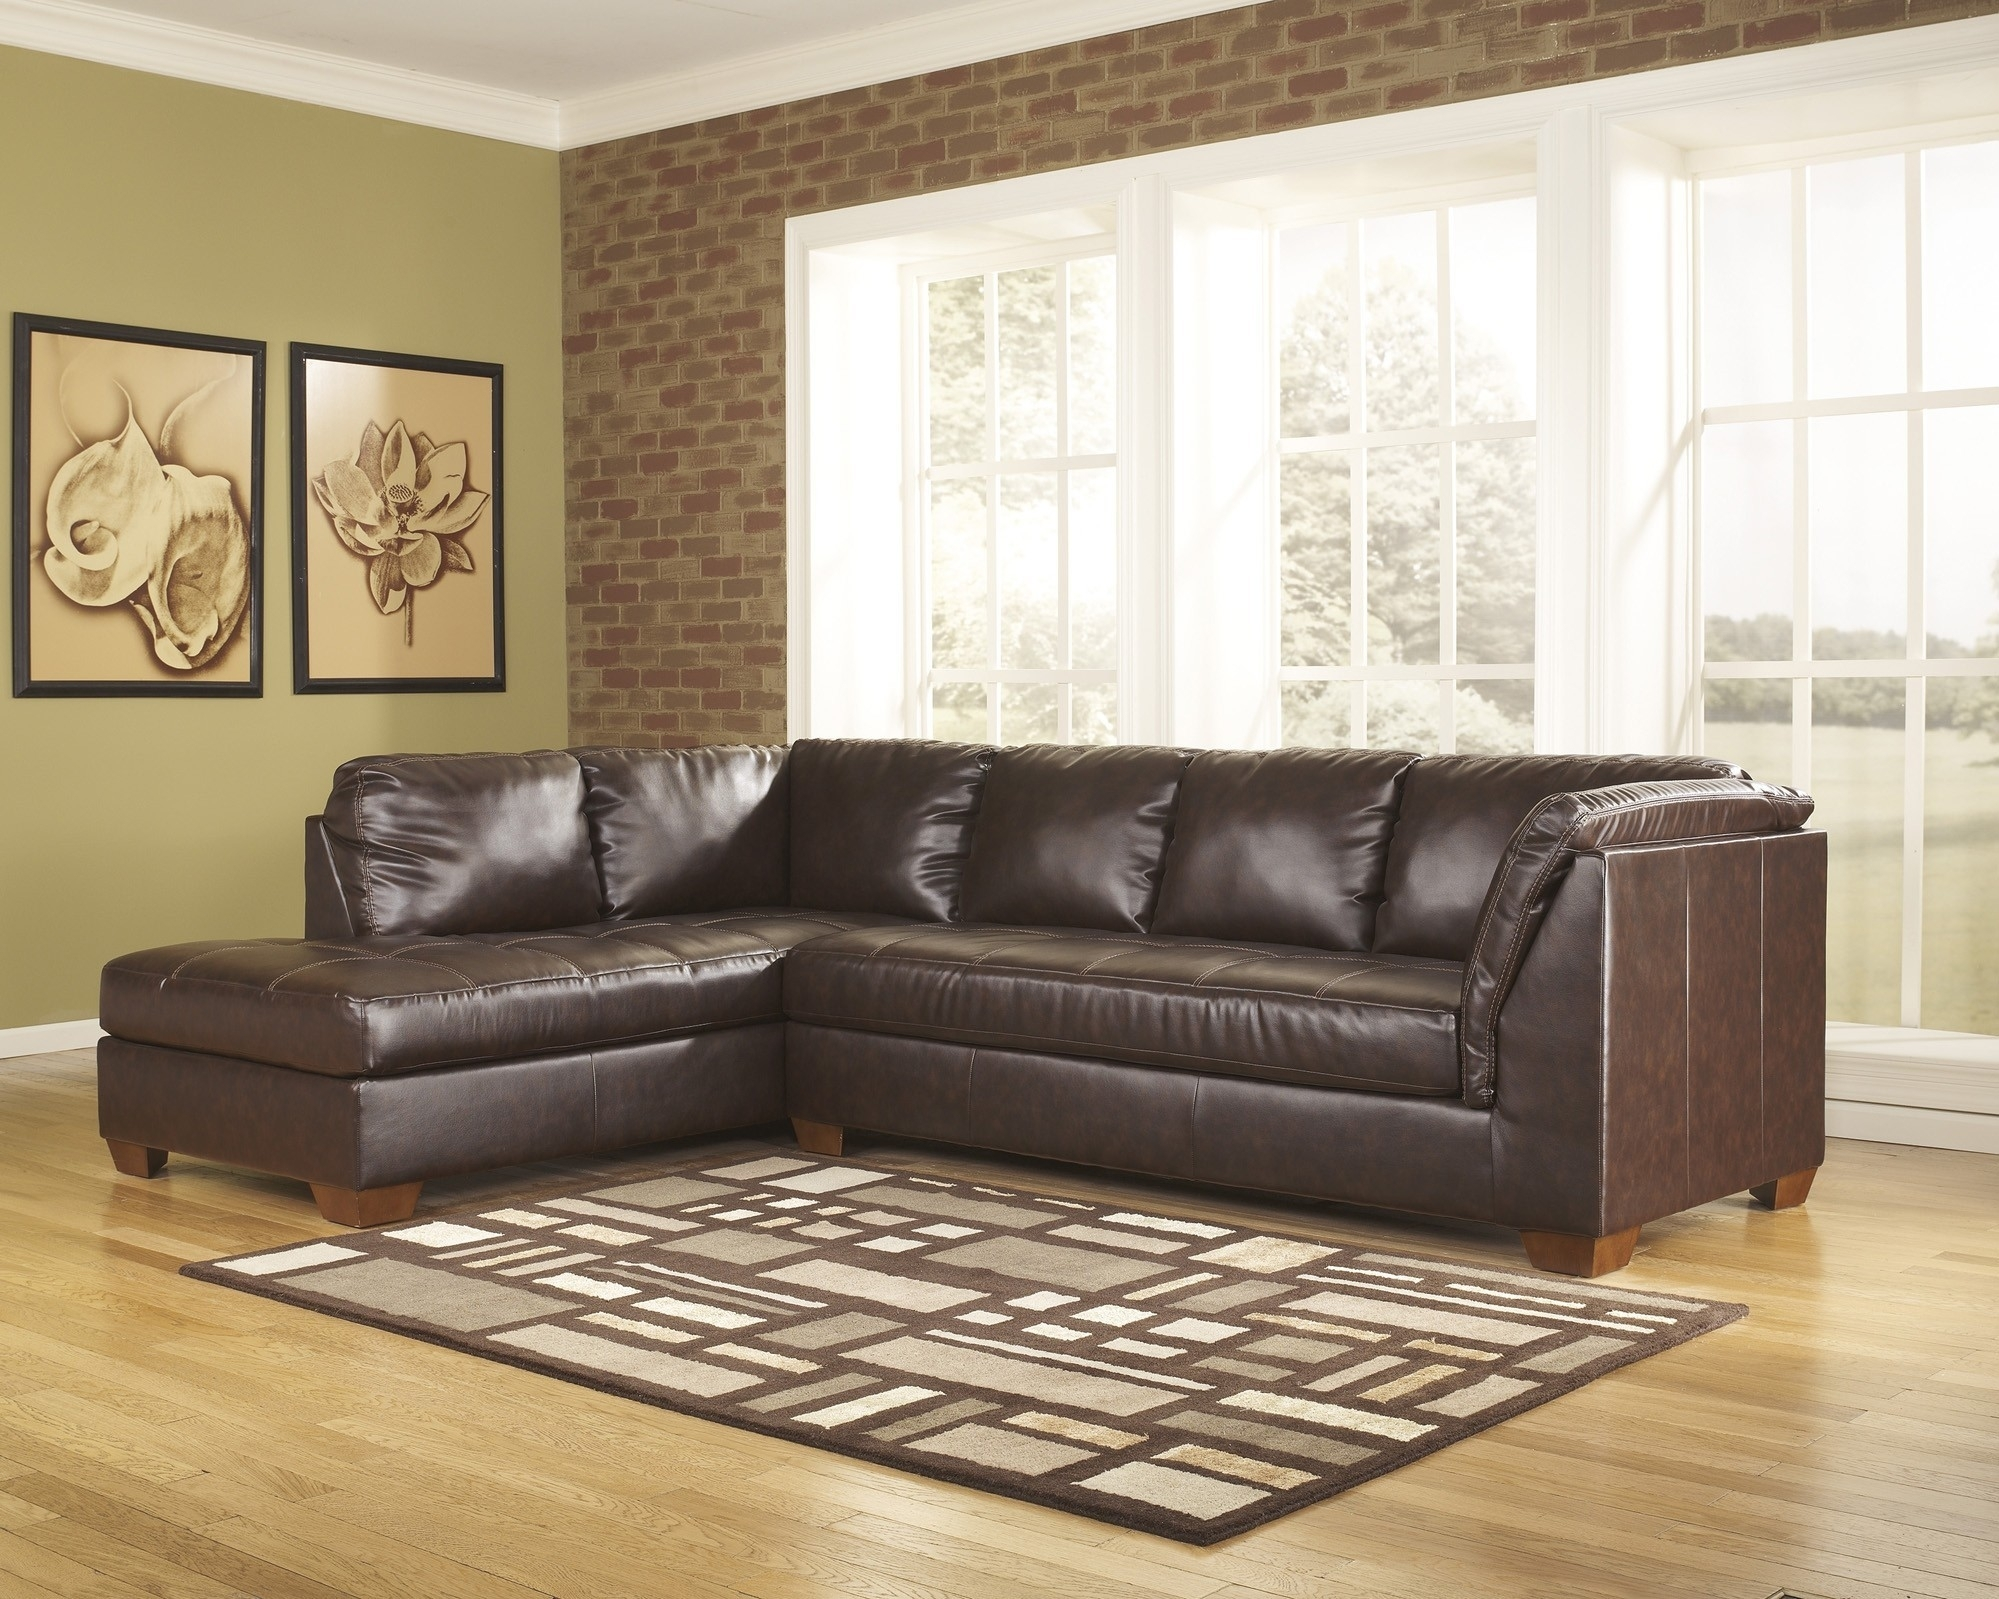 Lovely 2 Piece Sectional Sofa – Buildsimplehome Within Evan 2 Piece Sectionals With Raf Chaise (Image 20 of 25)